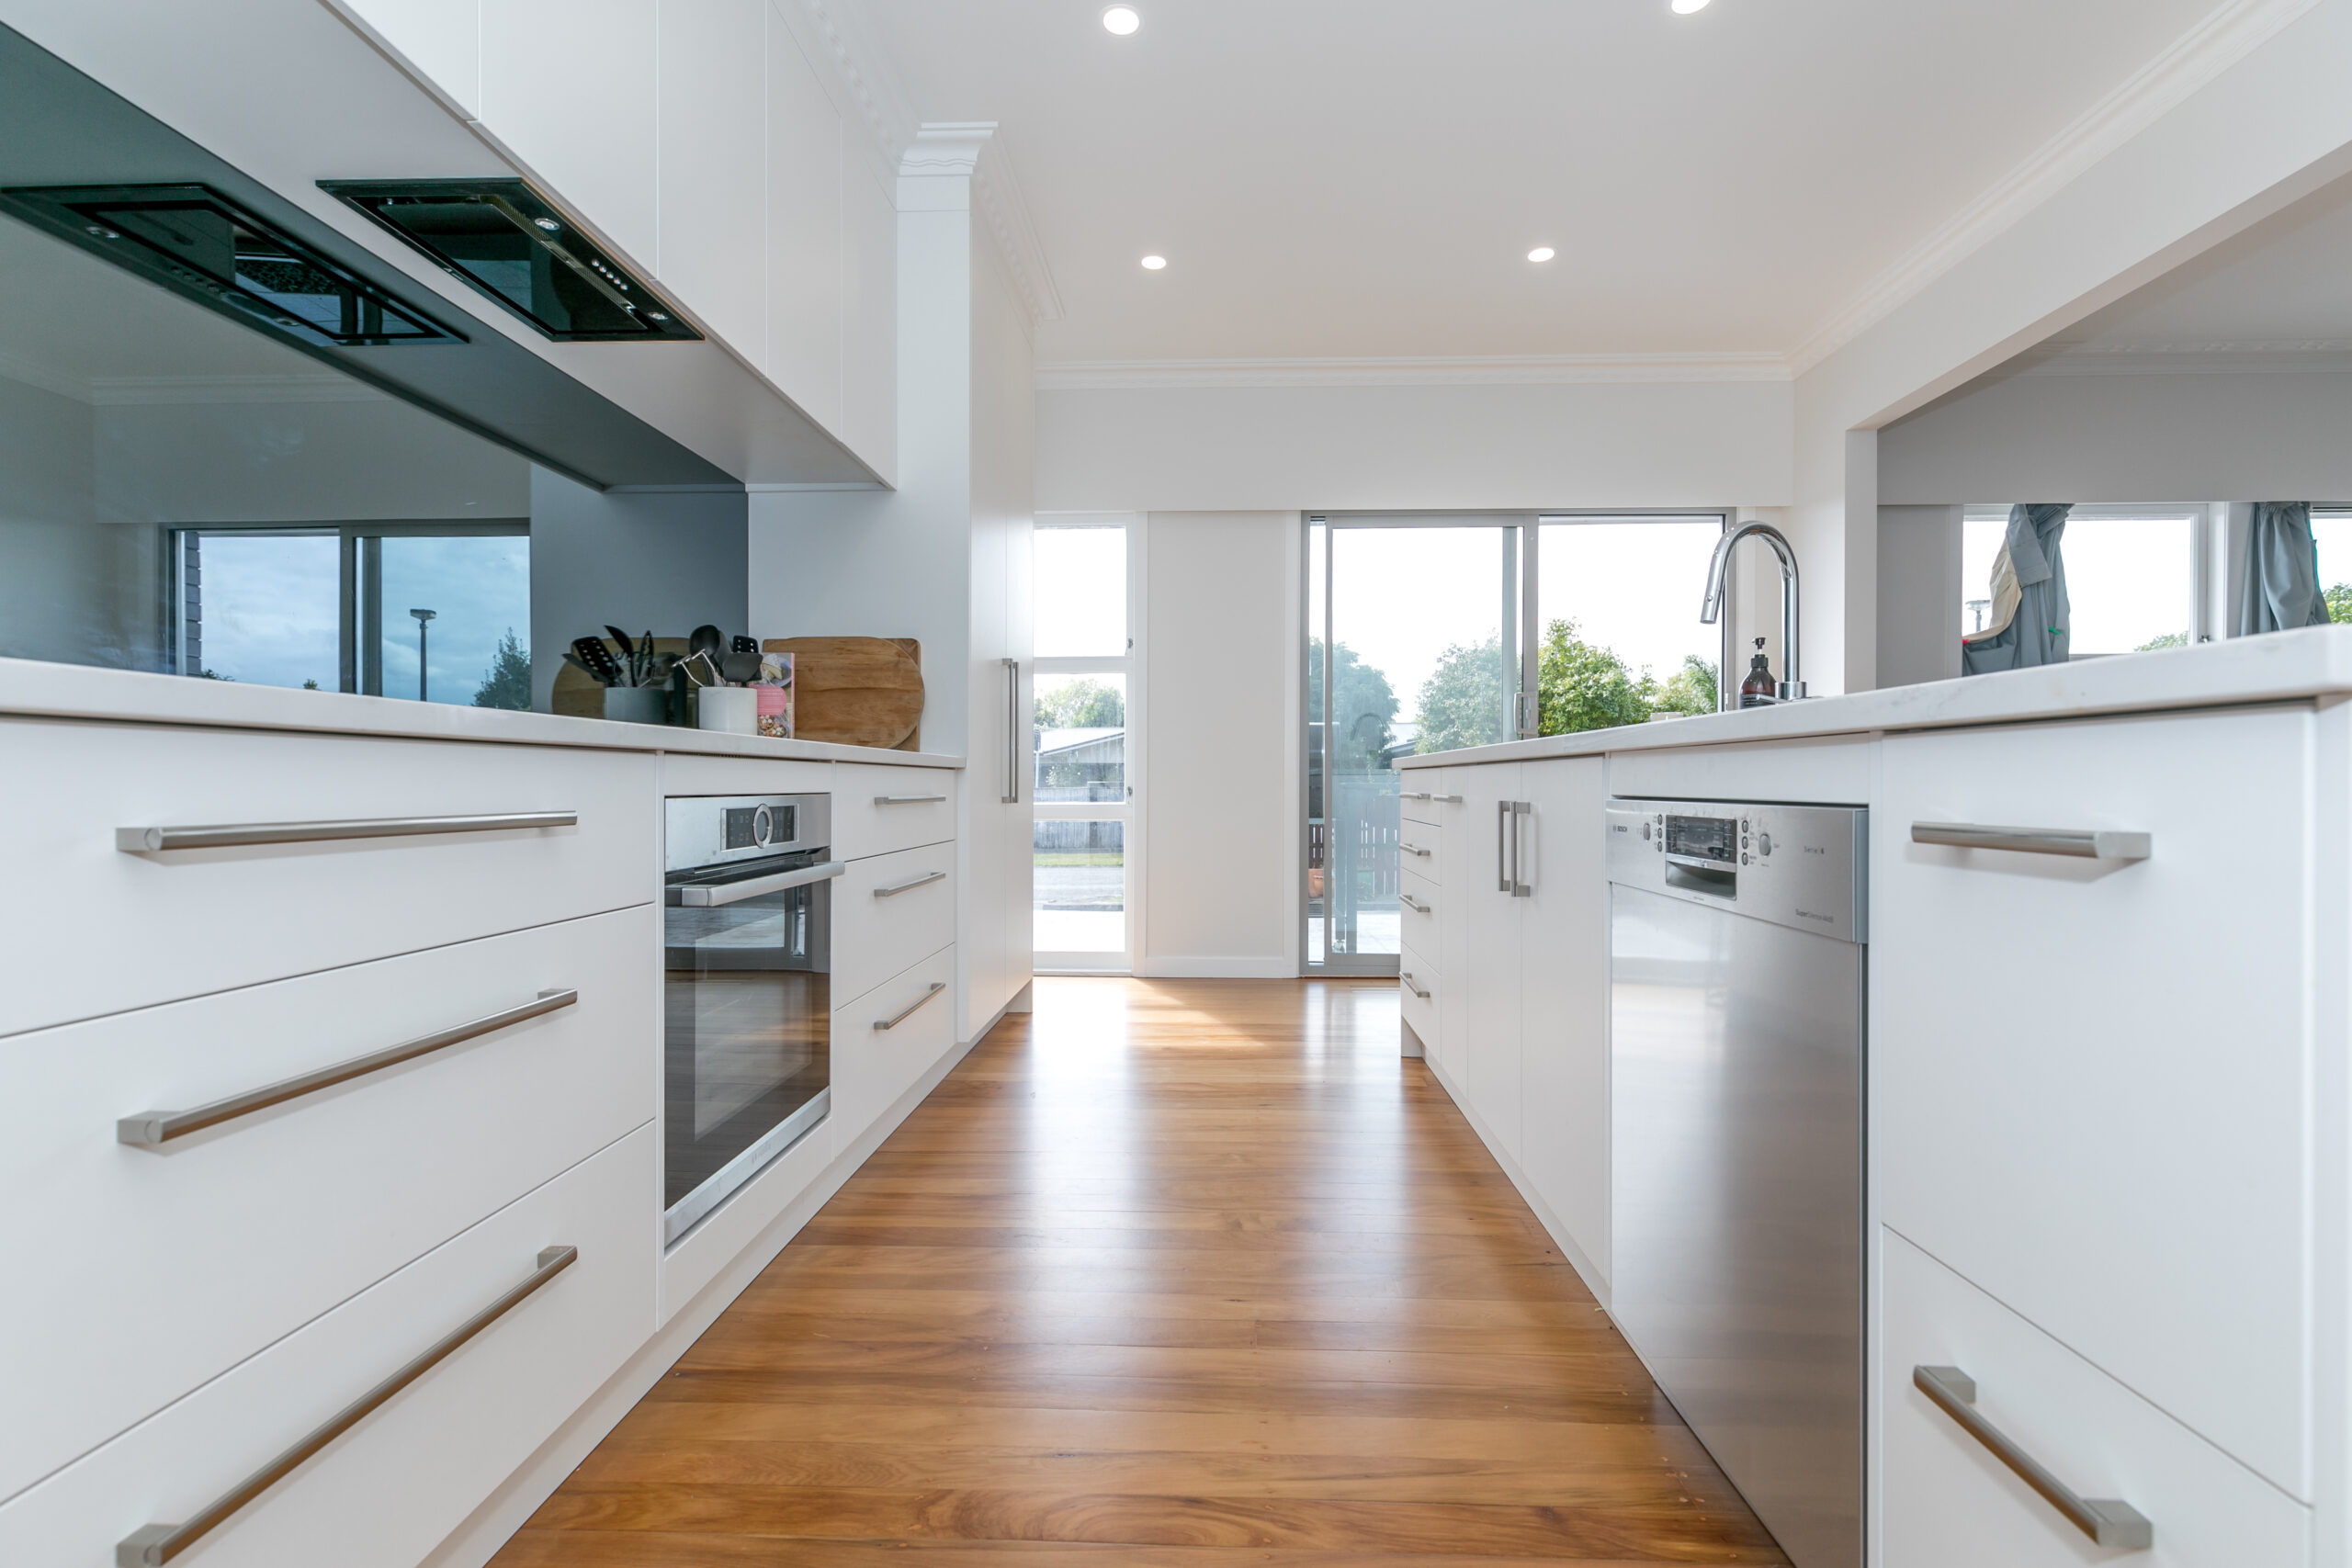 A staged reno – St Andrews